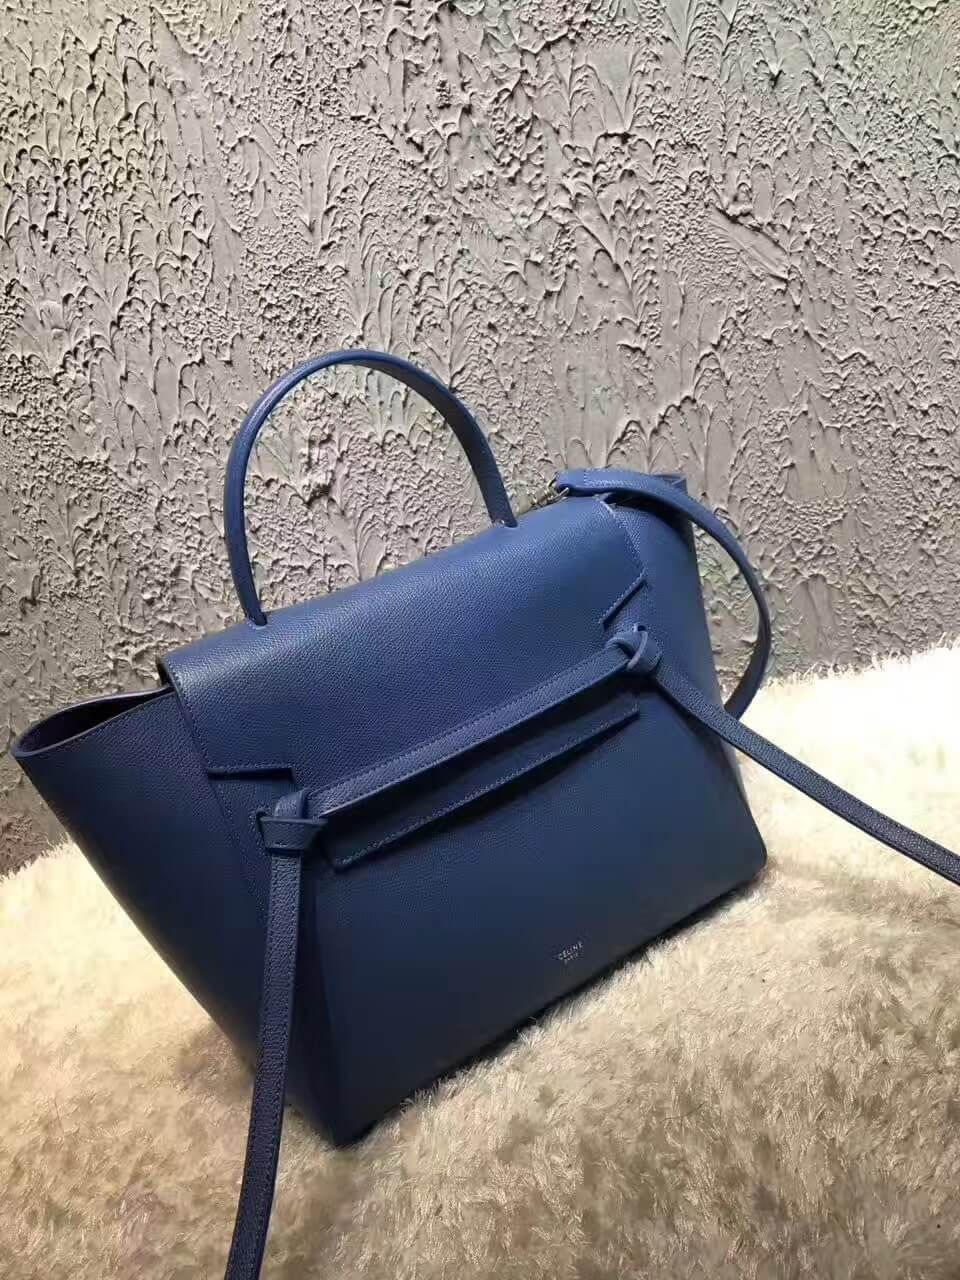 57a118e91b Celine Mini Belt Handbag In Washed Blue Grained Calfskin 2017 ...